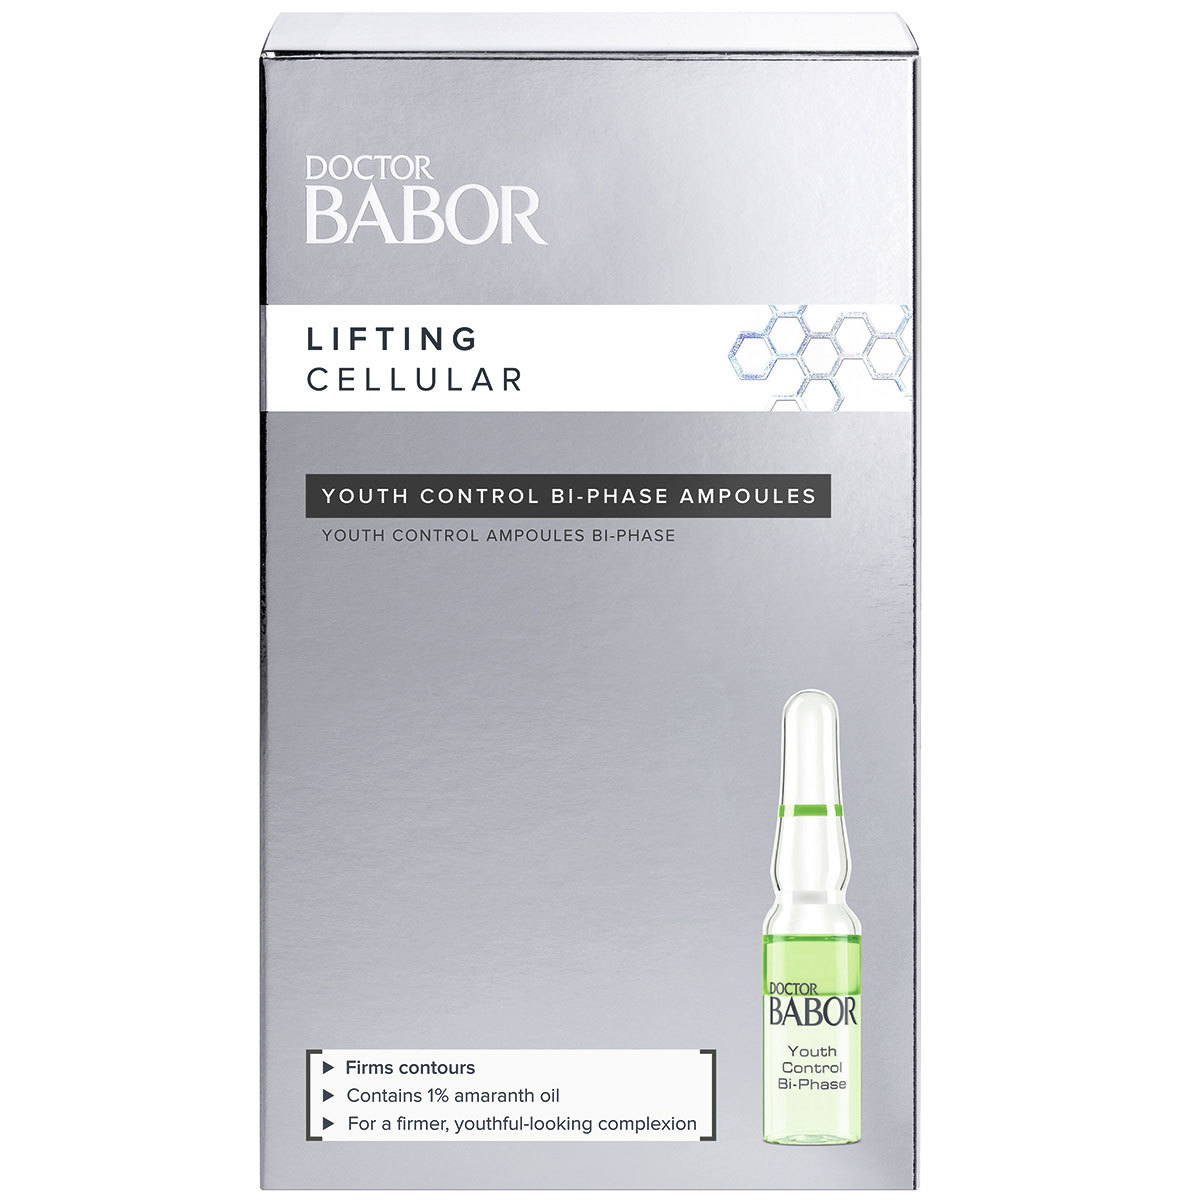 Ампульный концентрат Babor Lifting Cellular Youth Control Bi-Phase 7ml